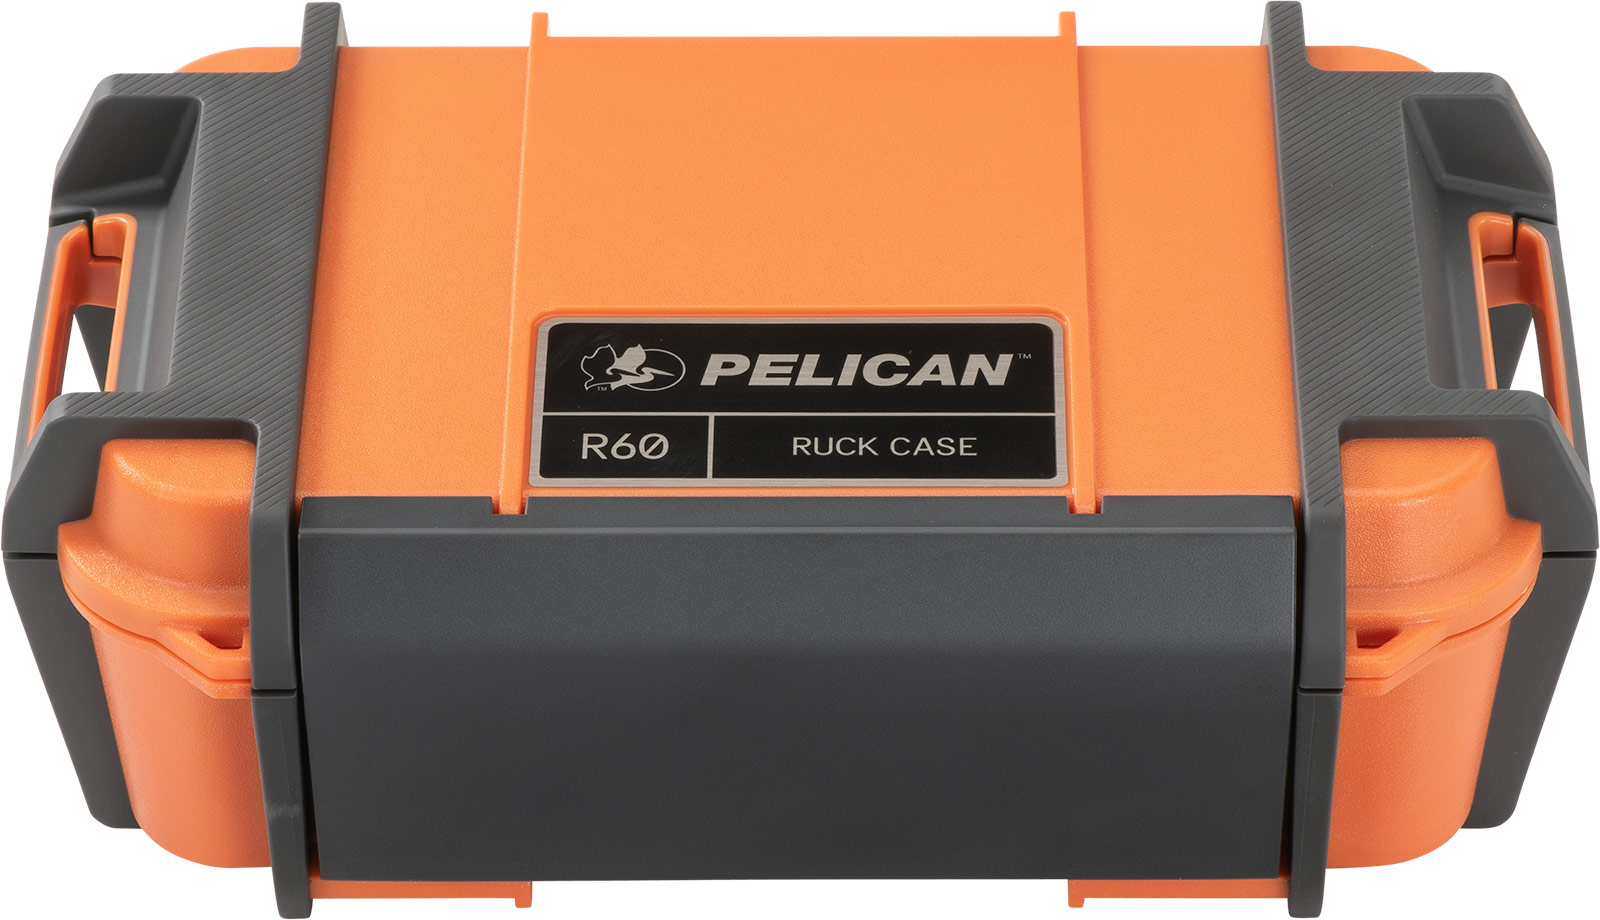 pelican ruck r60 organization hiking case